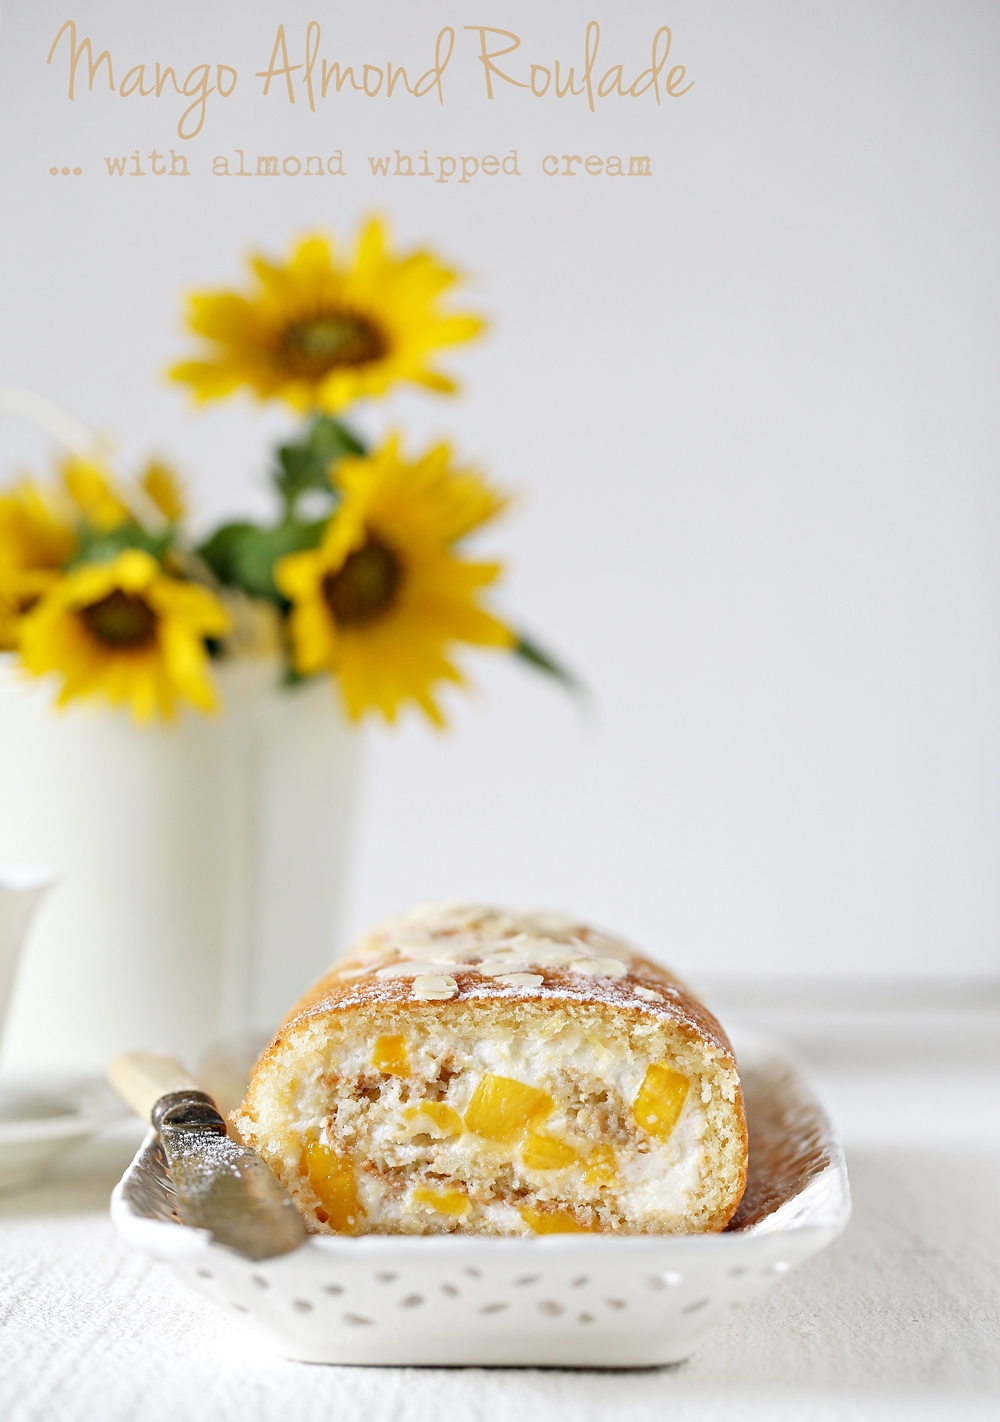 Mango Almond Roulade with almond whipped cream